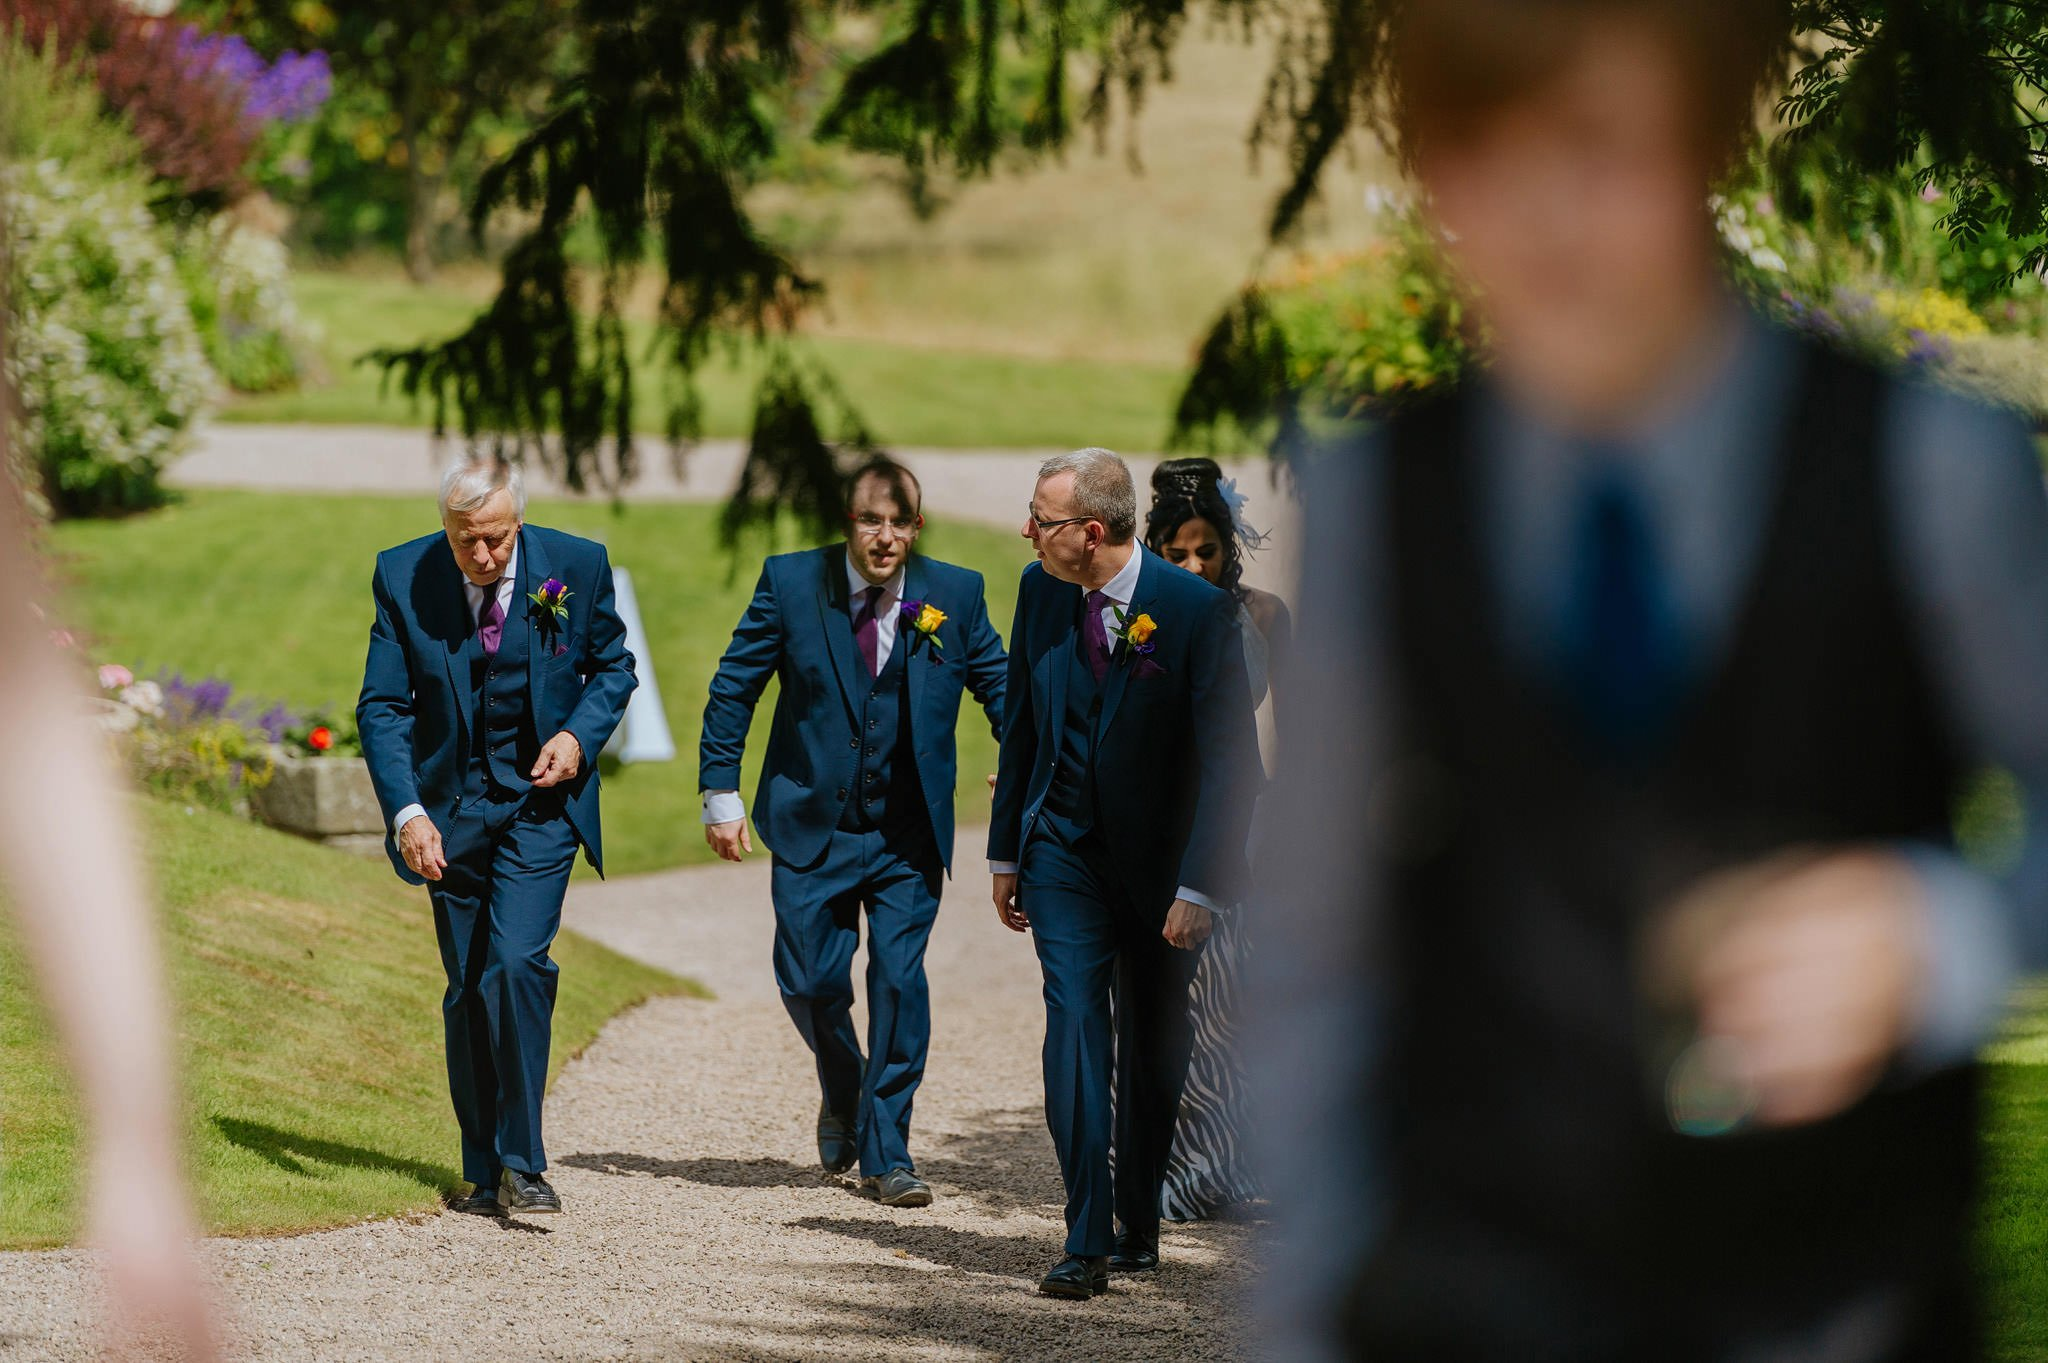 Wedding photography at Homme House in Herefordshire, West Midlands 14